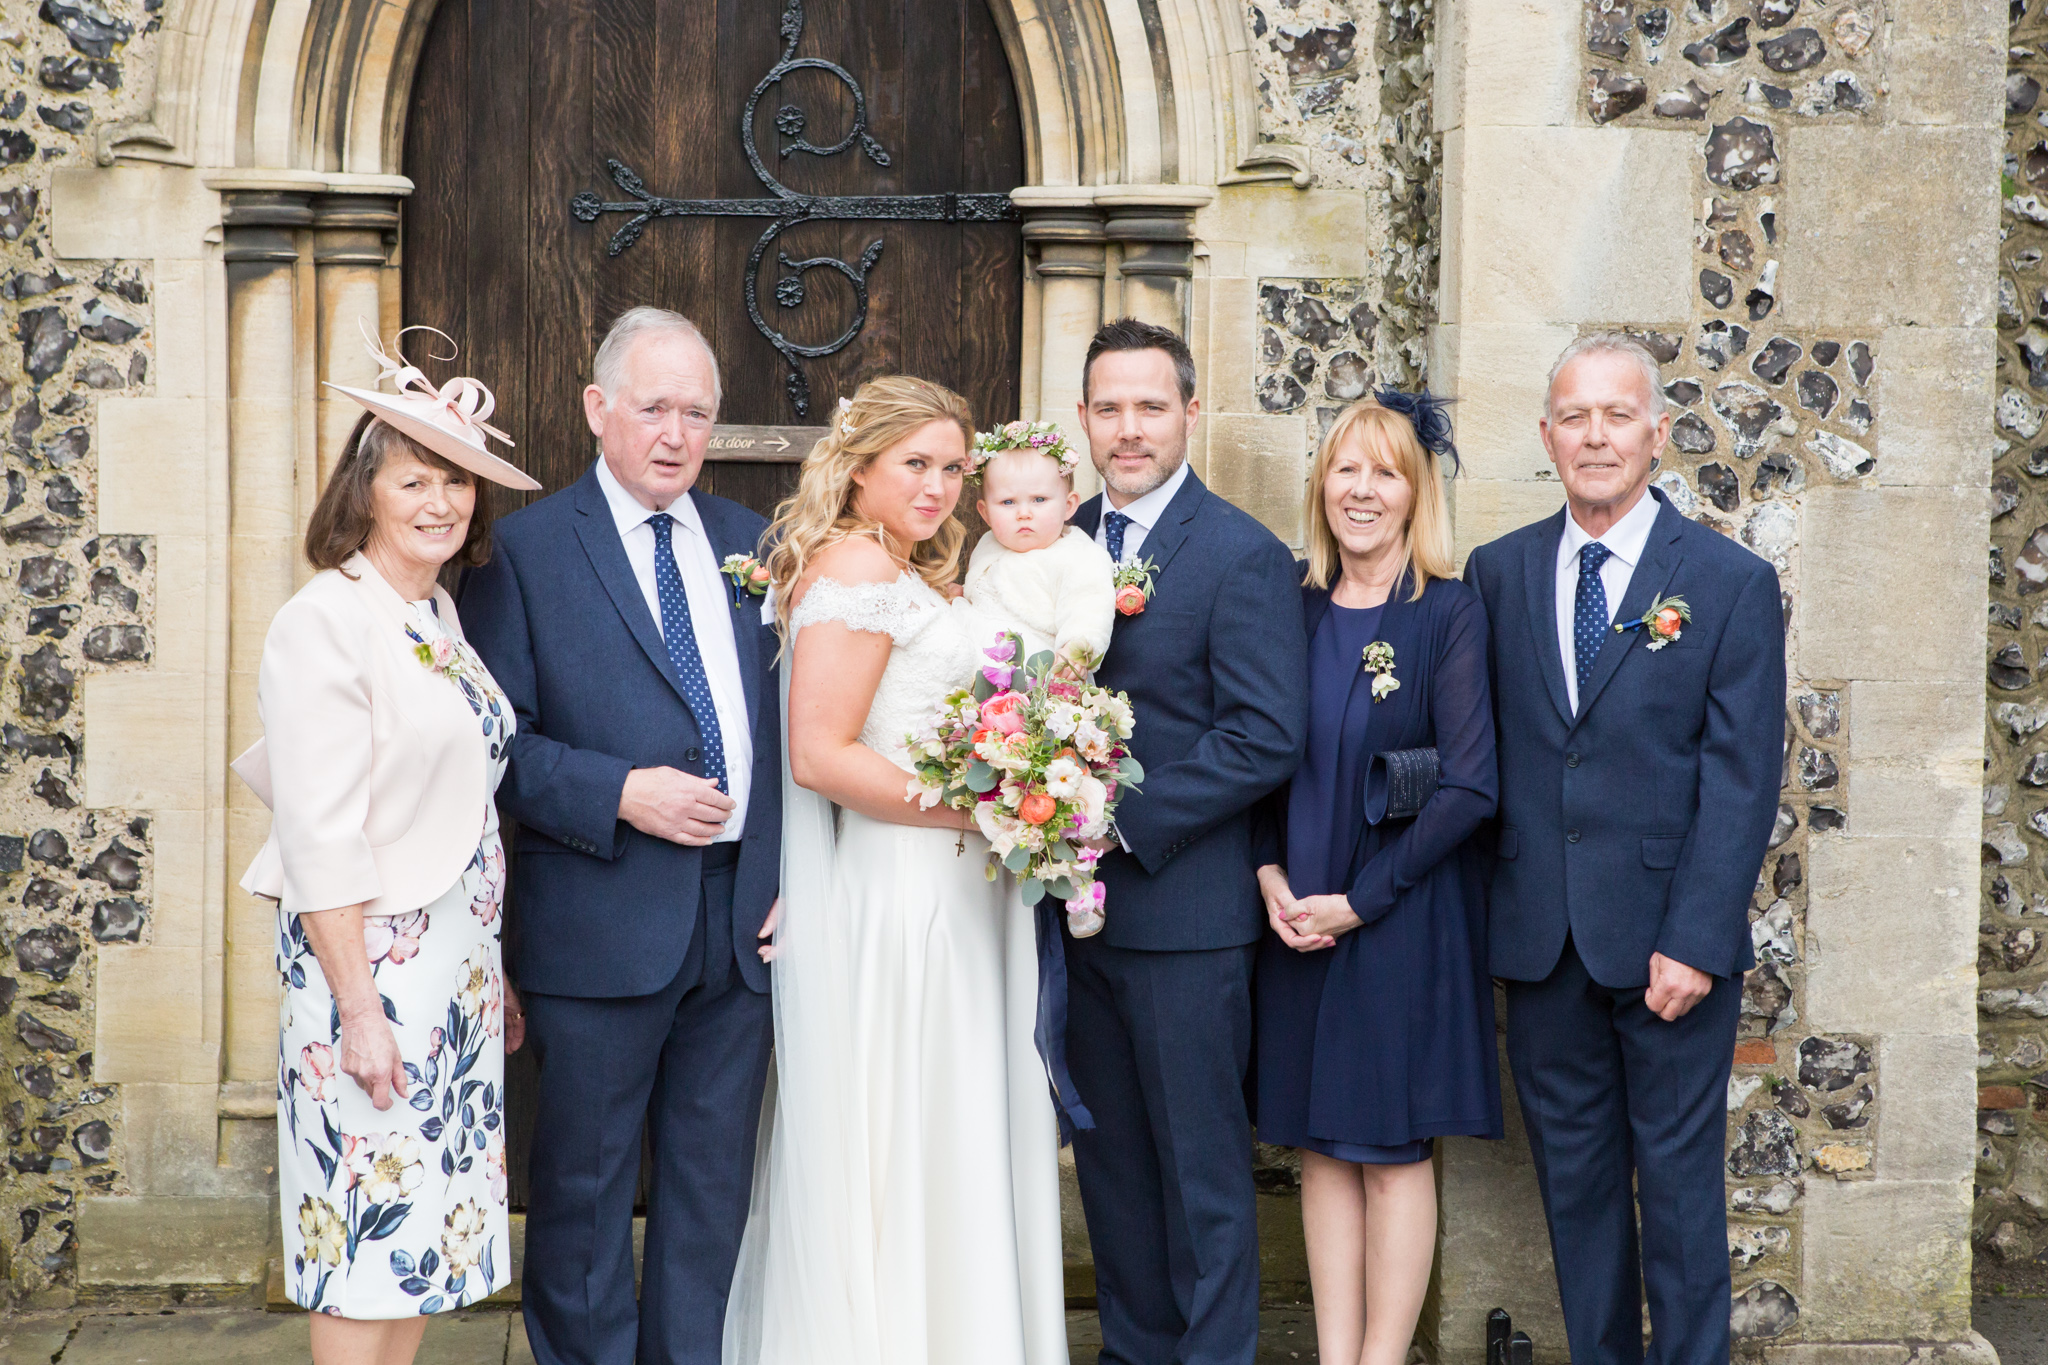 Group shot of wedding guests taken outside church by Bromley wedding photographer